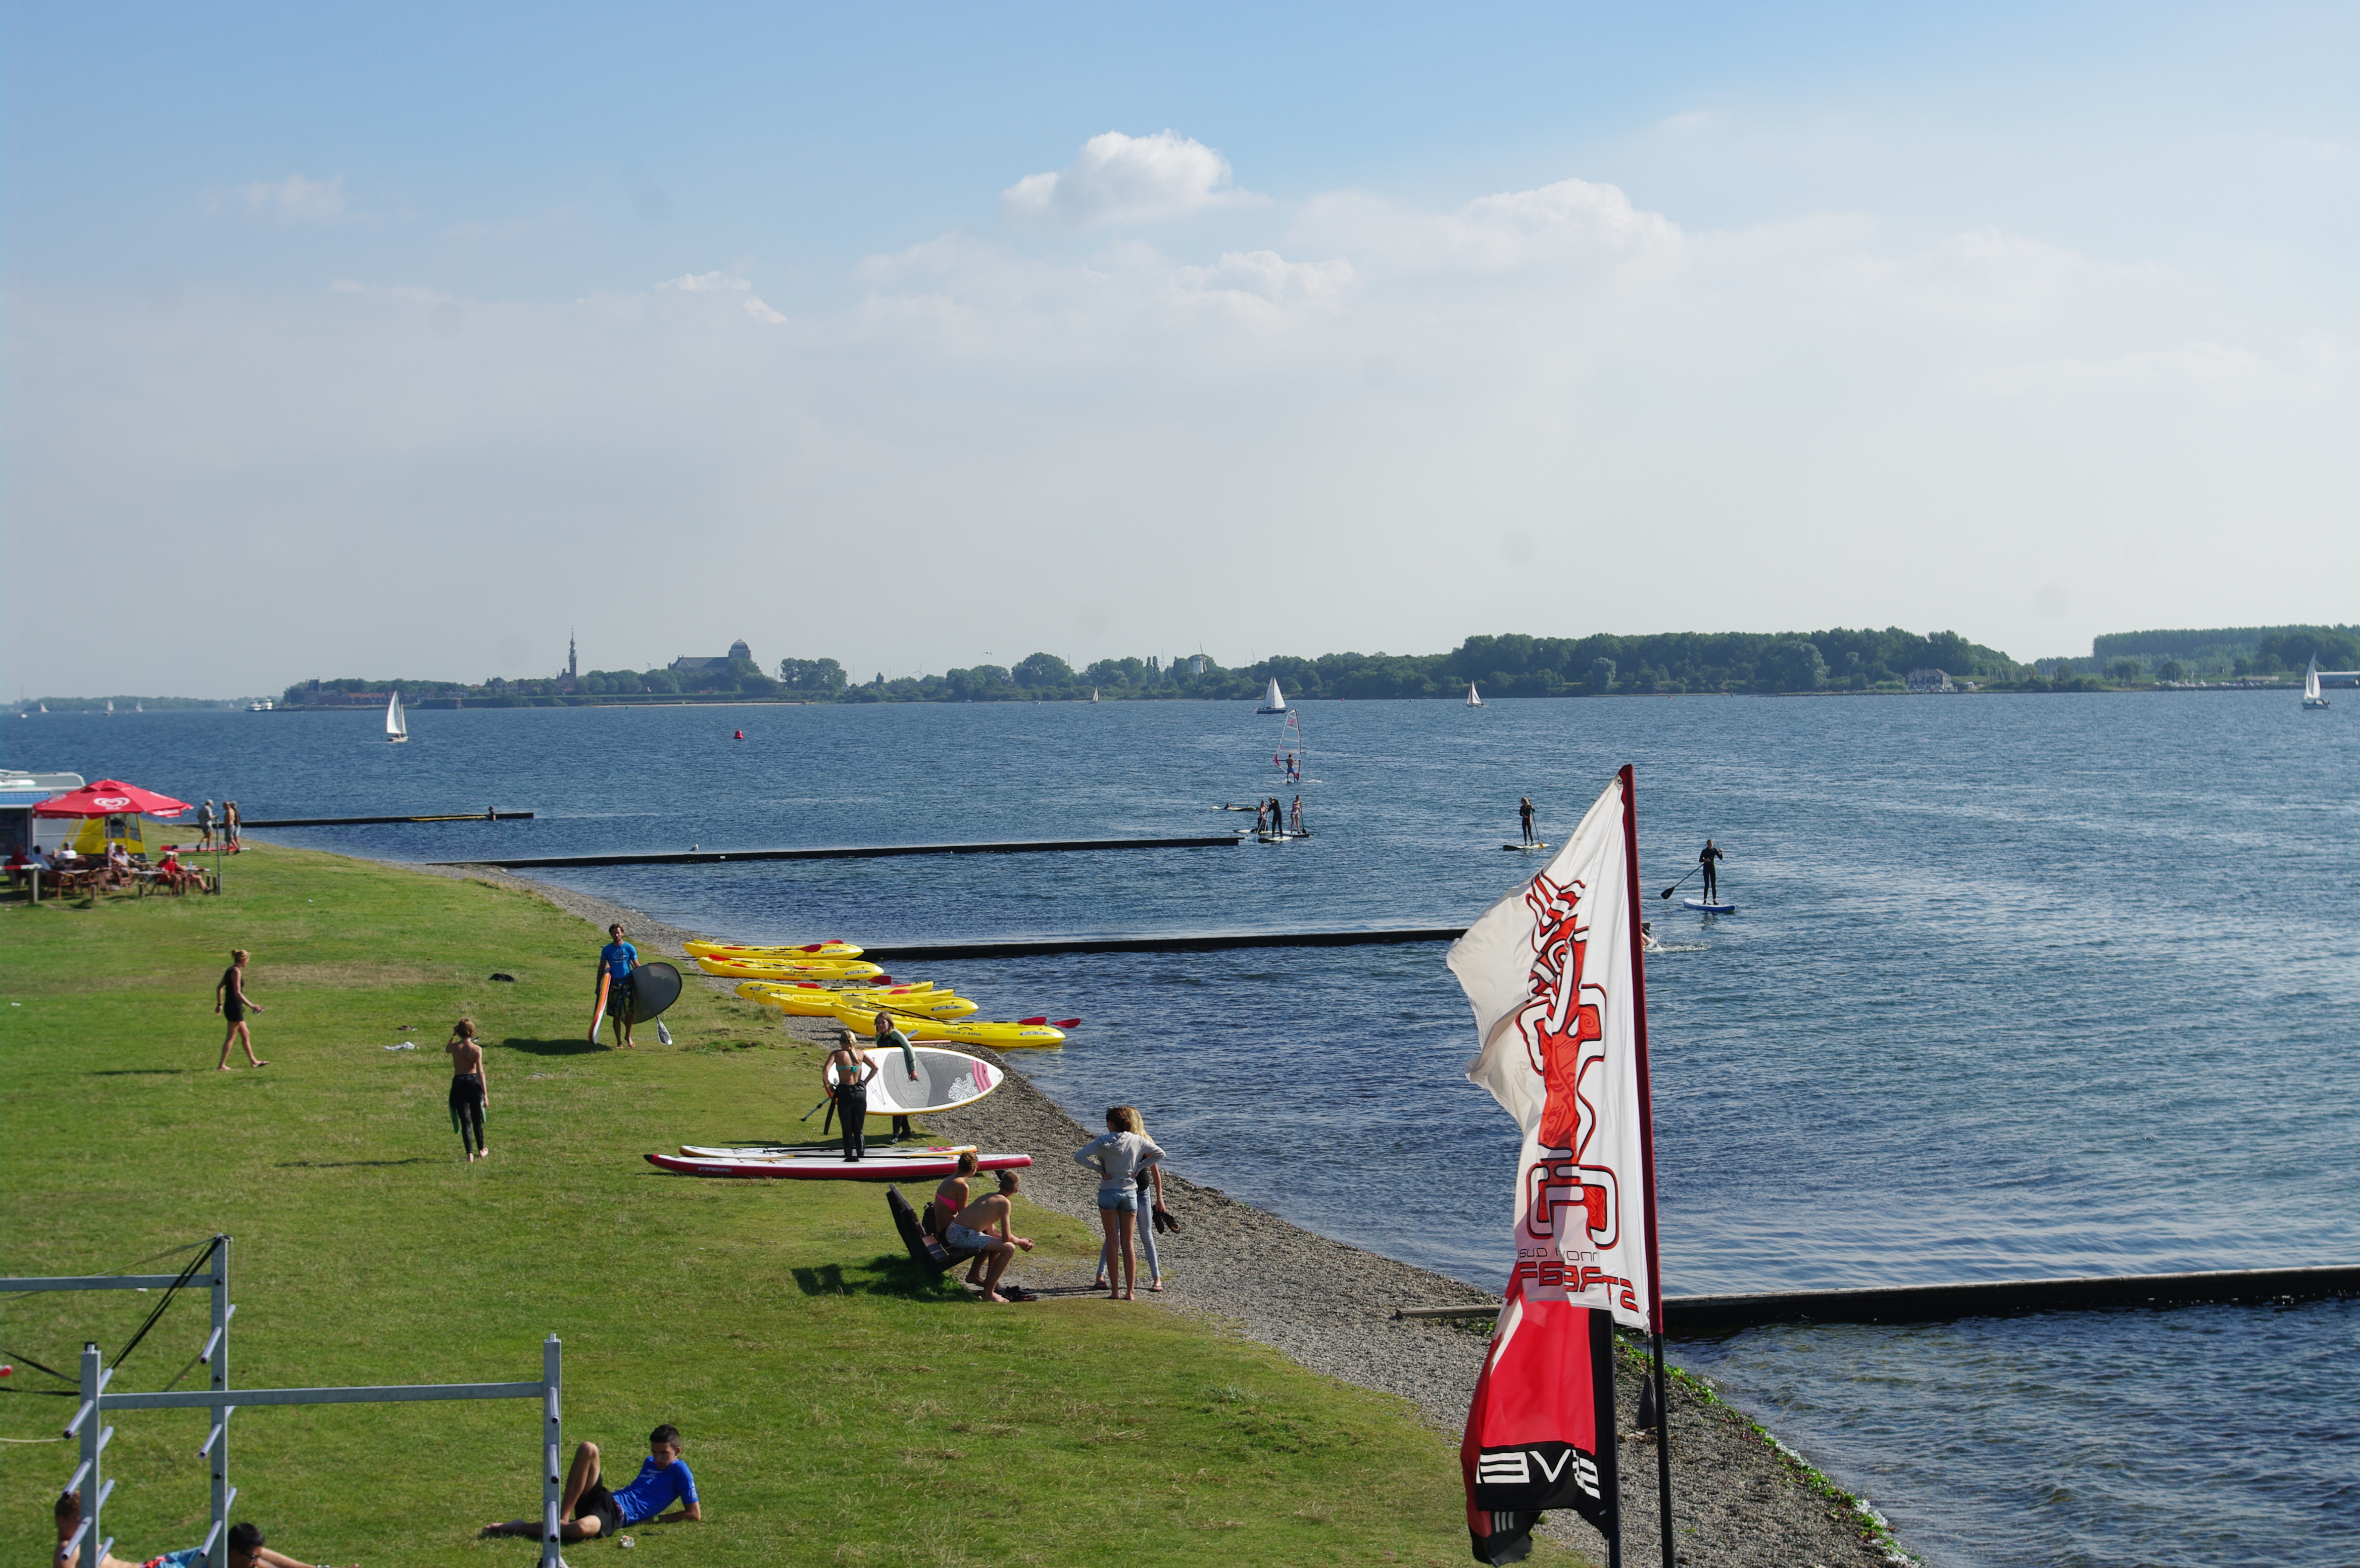 Schotsman Watersport